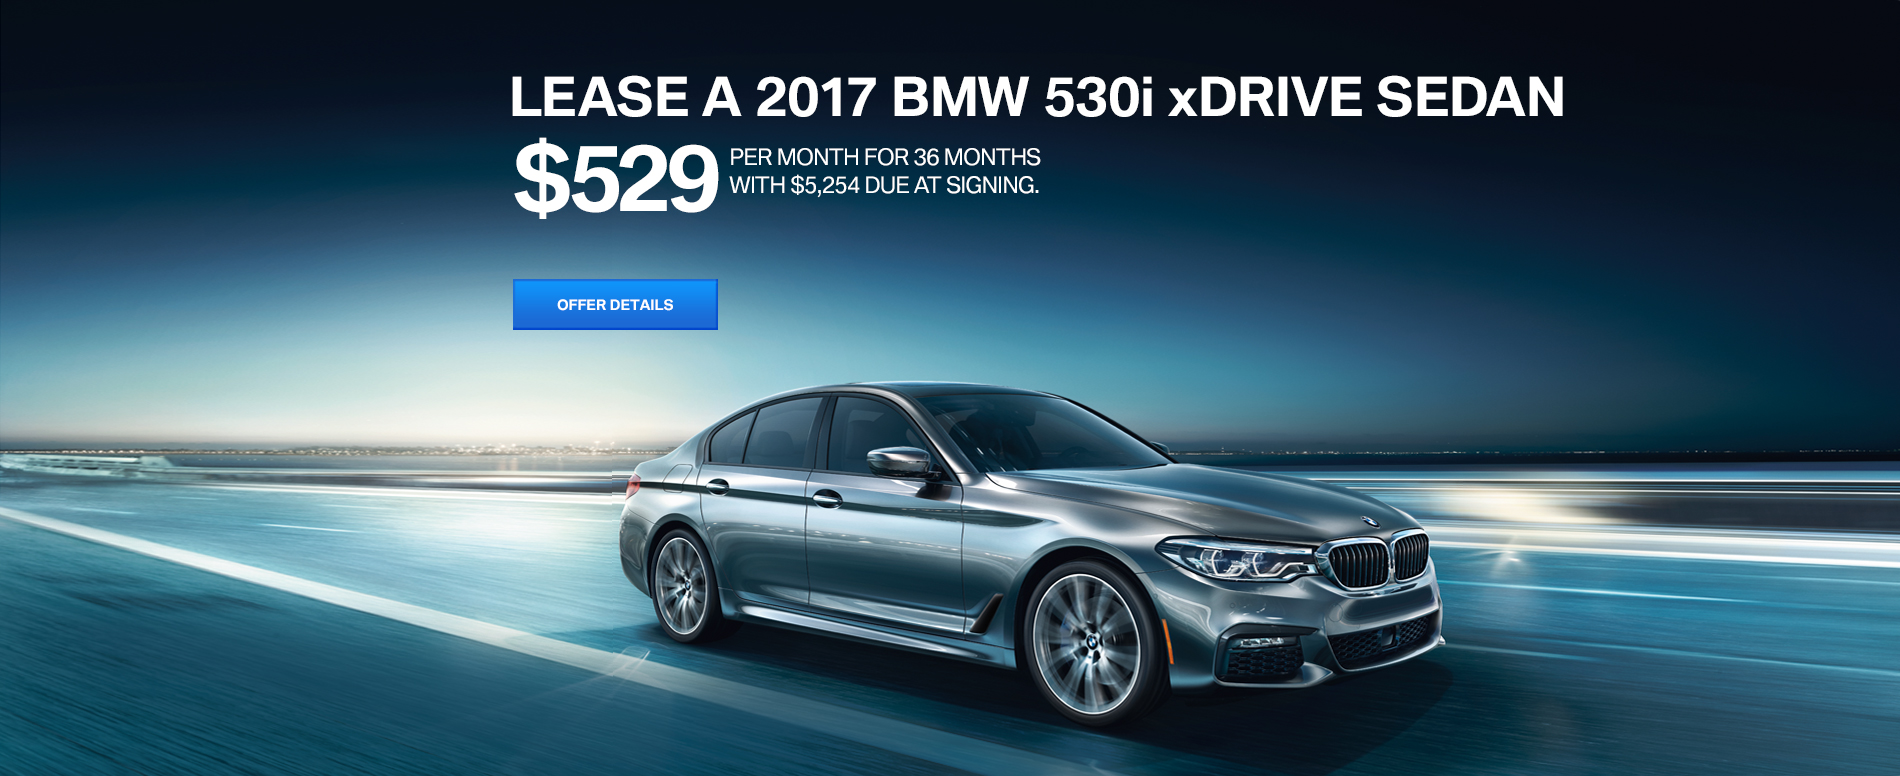 LEASE A 2017 530i xDRIVE SEDAN FOR $529 /MO FOR 36 MONTHS